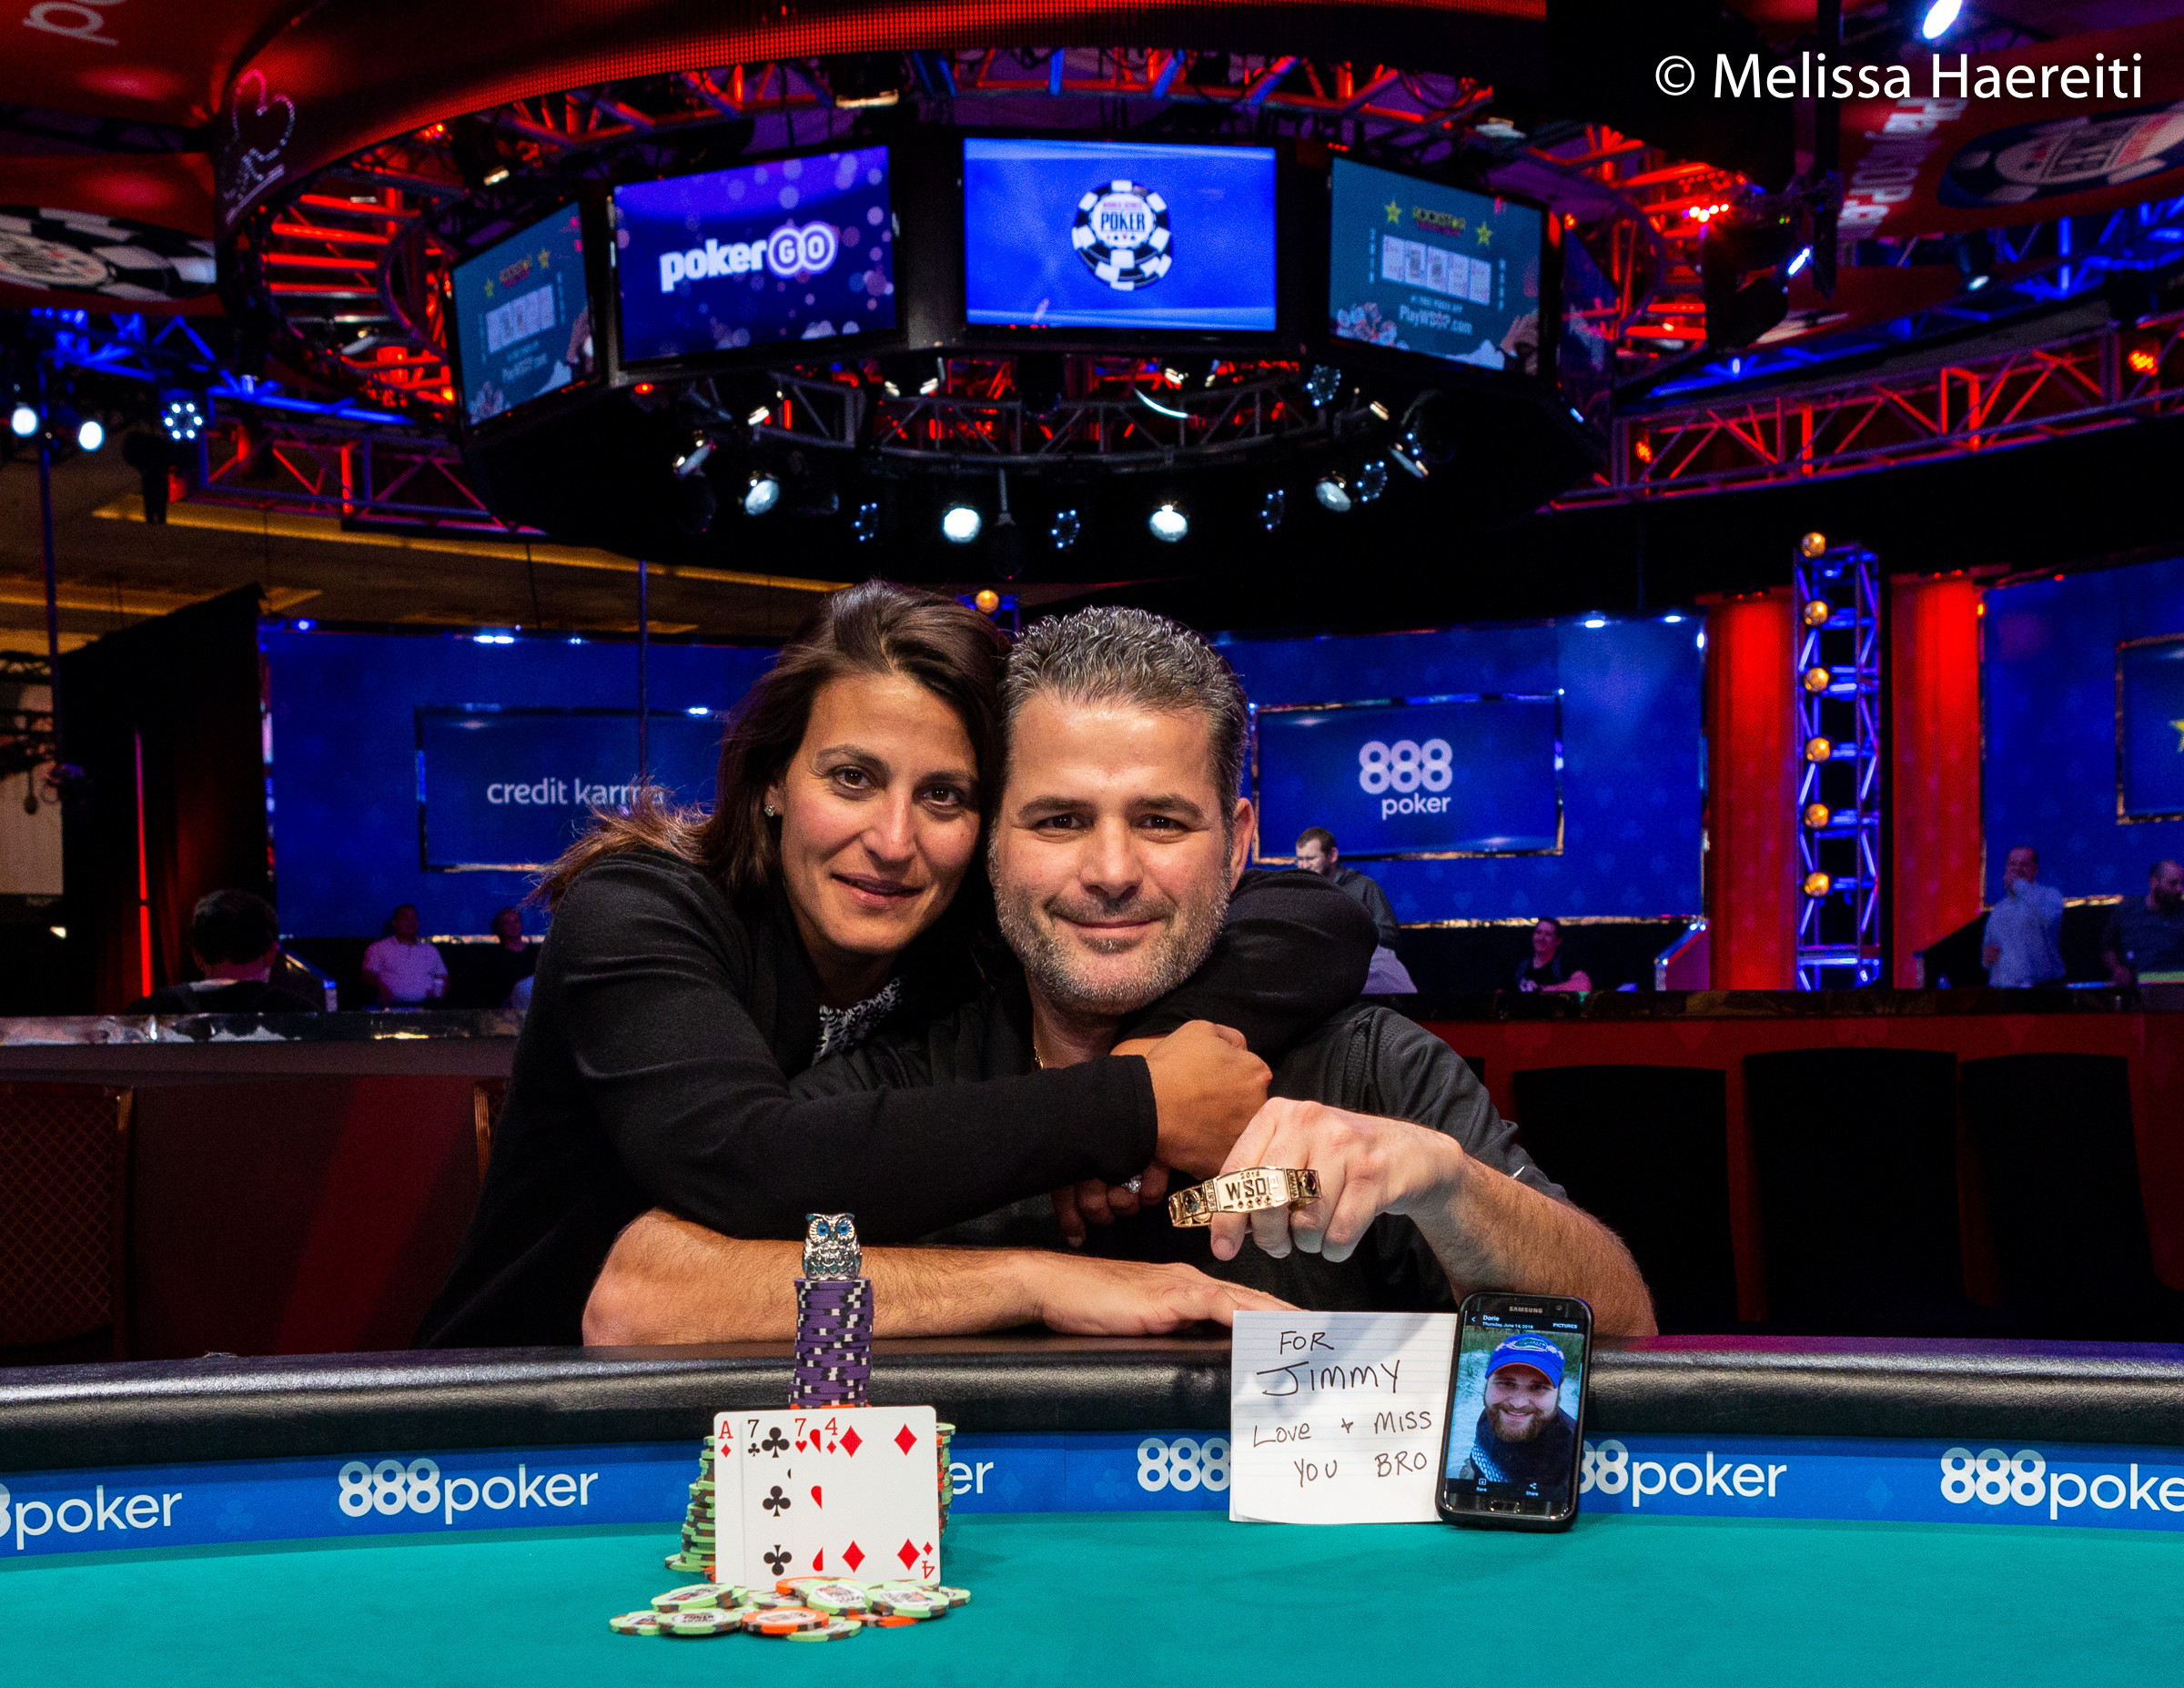 wsop filippos stavrakis gagne un bracelet pour son fr re finale pour le fran ais pascal. Black Bedroom Furniture Sets. Home Design Ideas